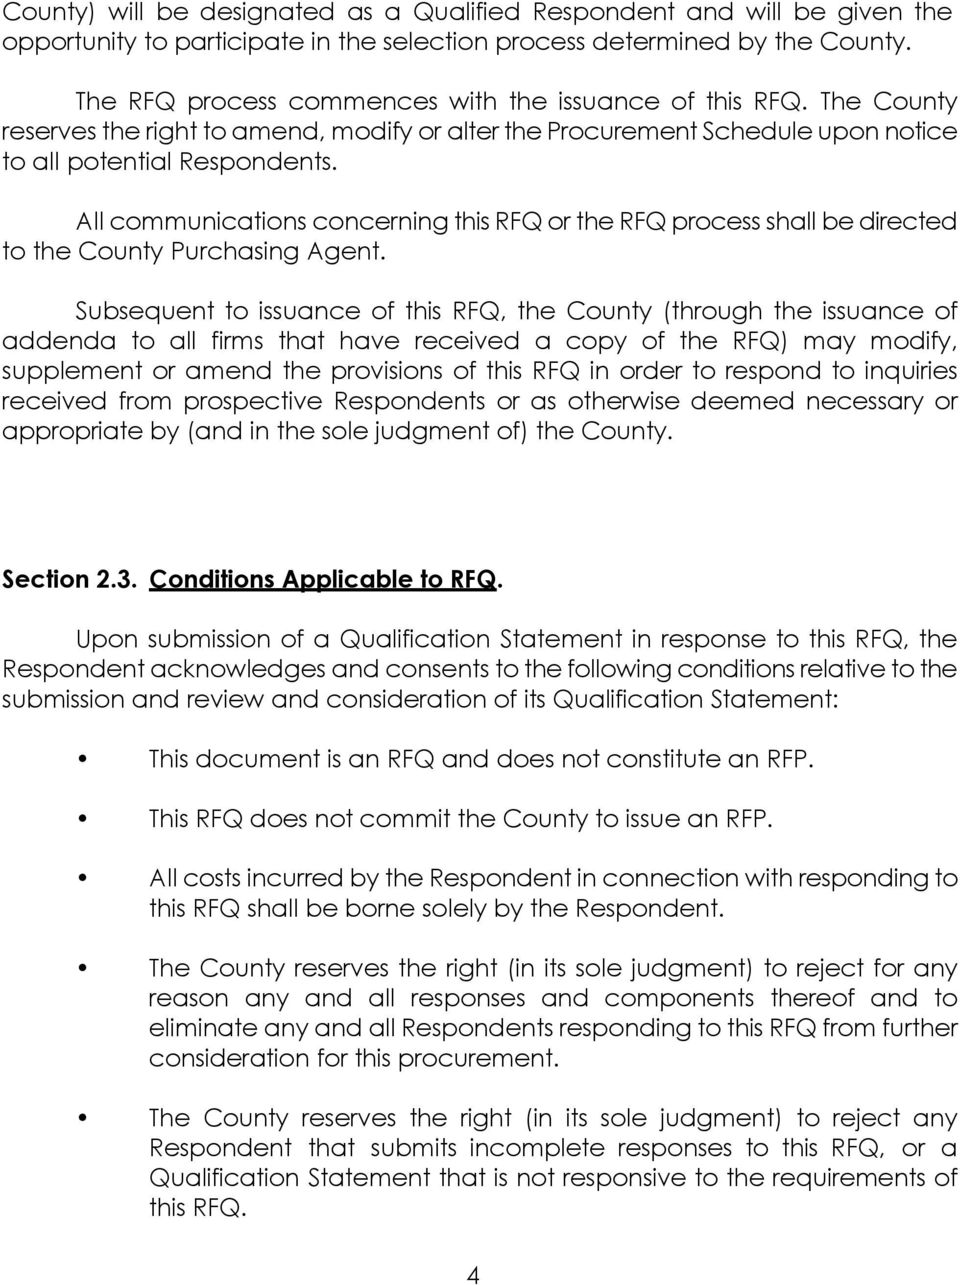 All communications concerning this RFQ or the RFQ process shall be directed to the County Purchasing Agent.